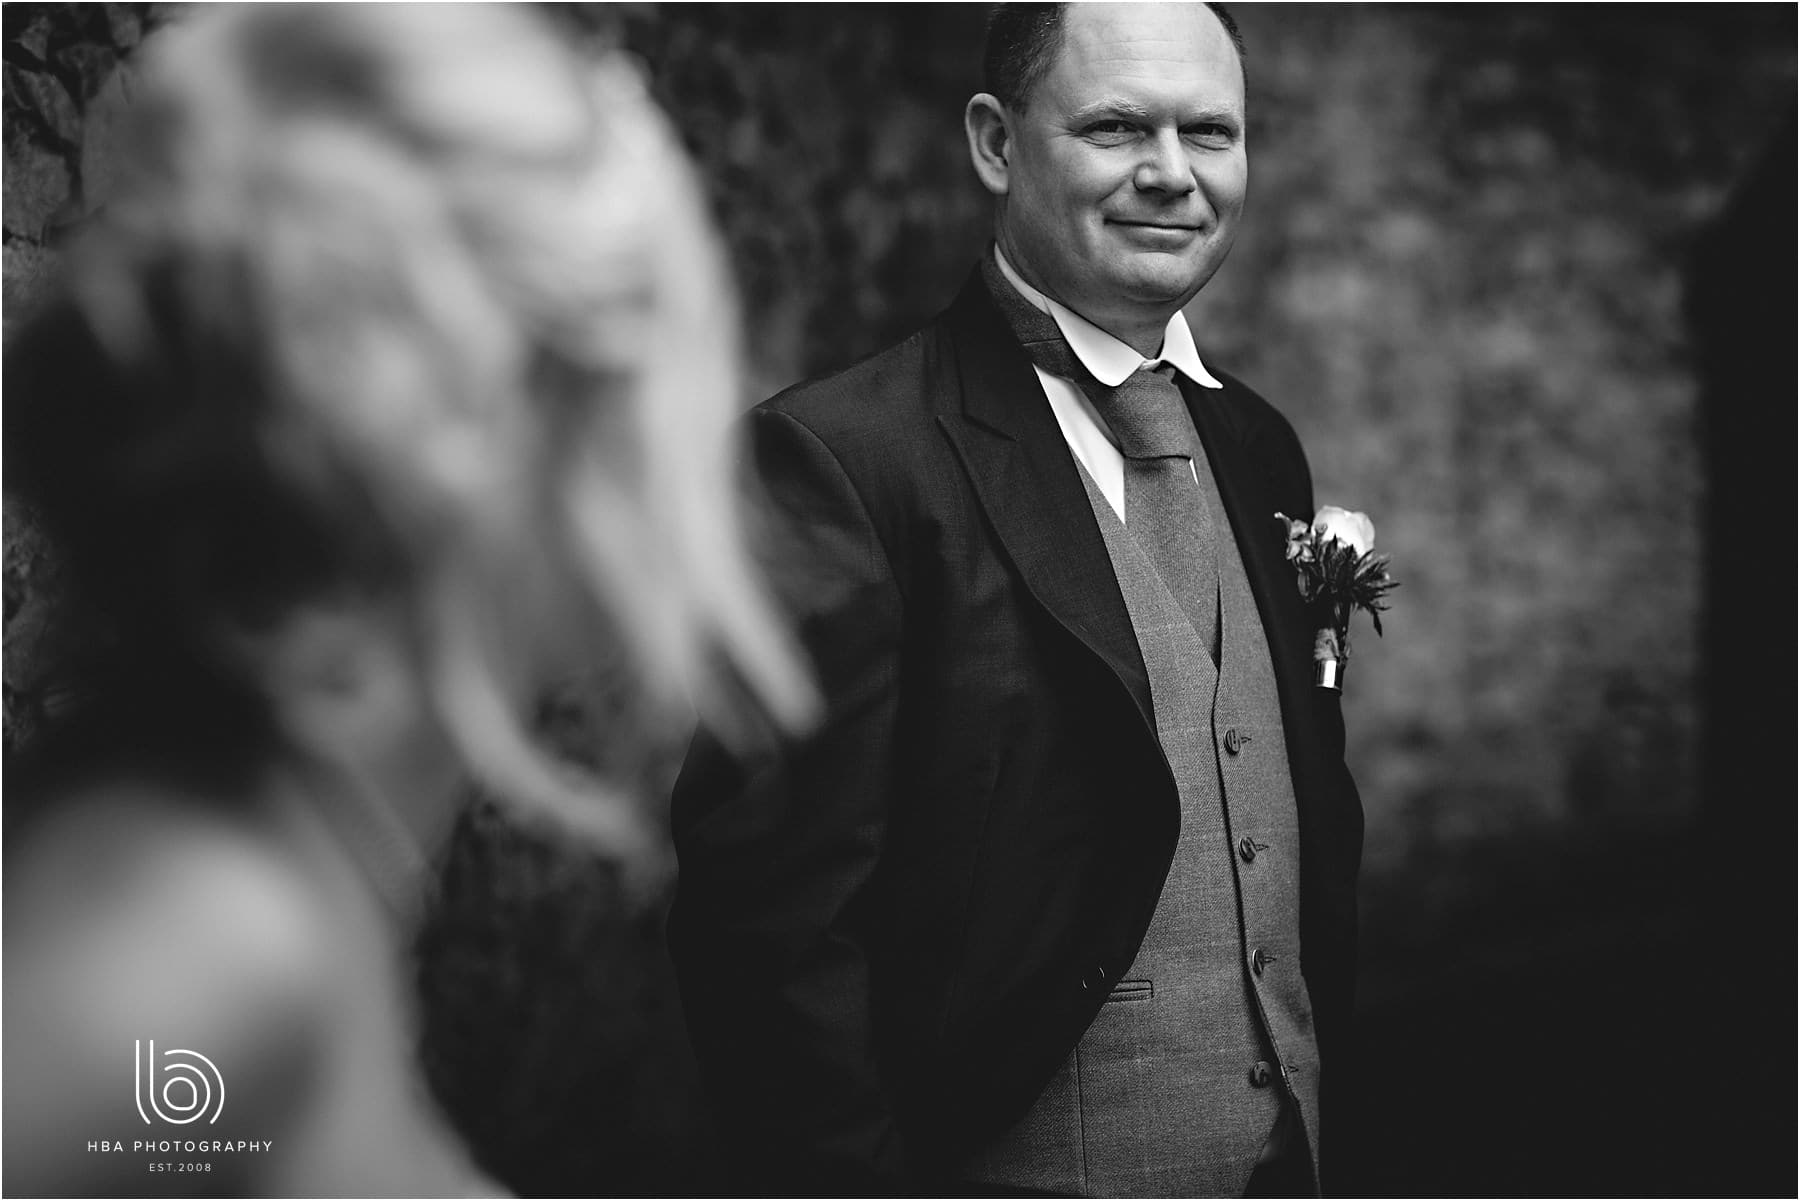 Portrait of the groom in black-and-white